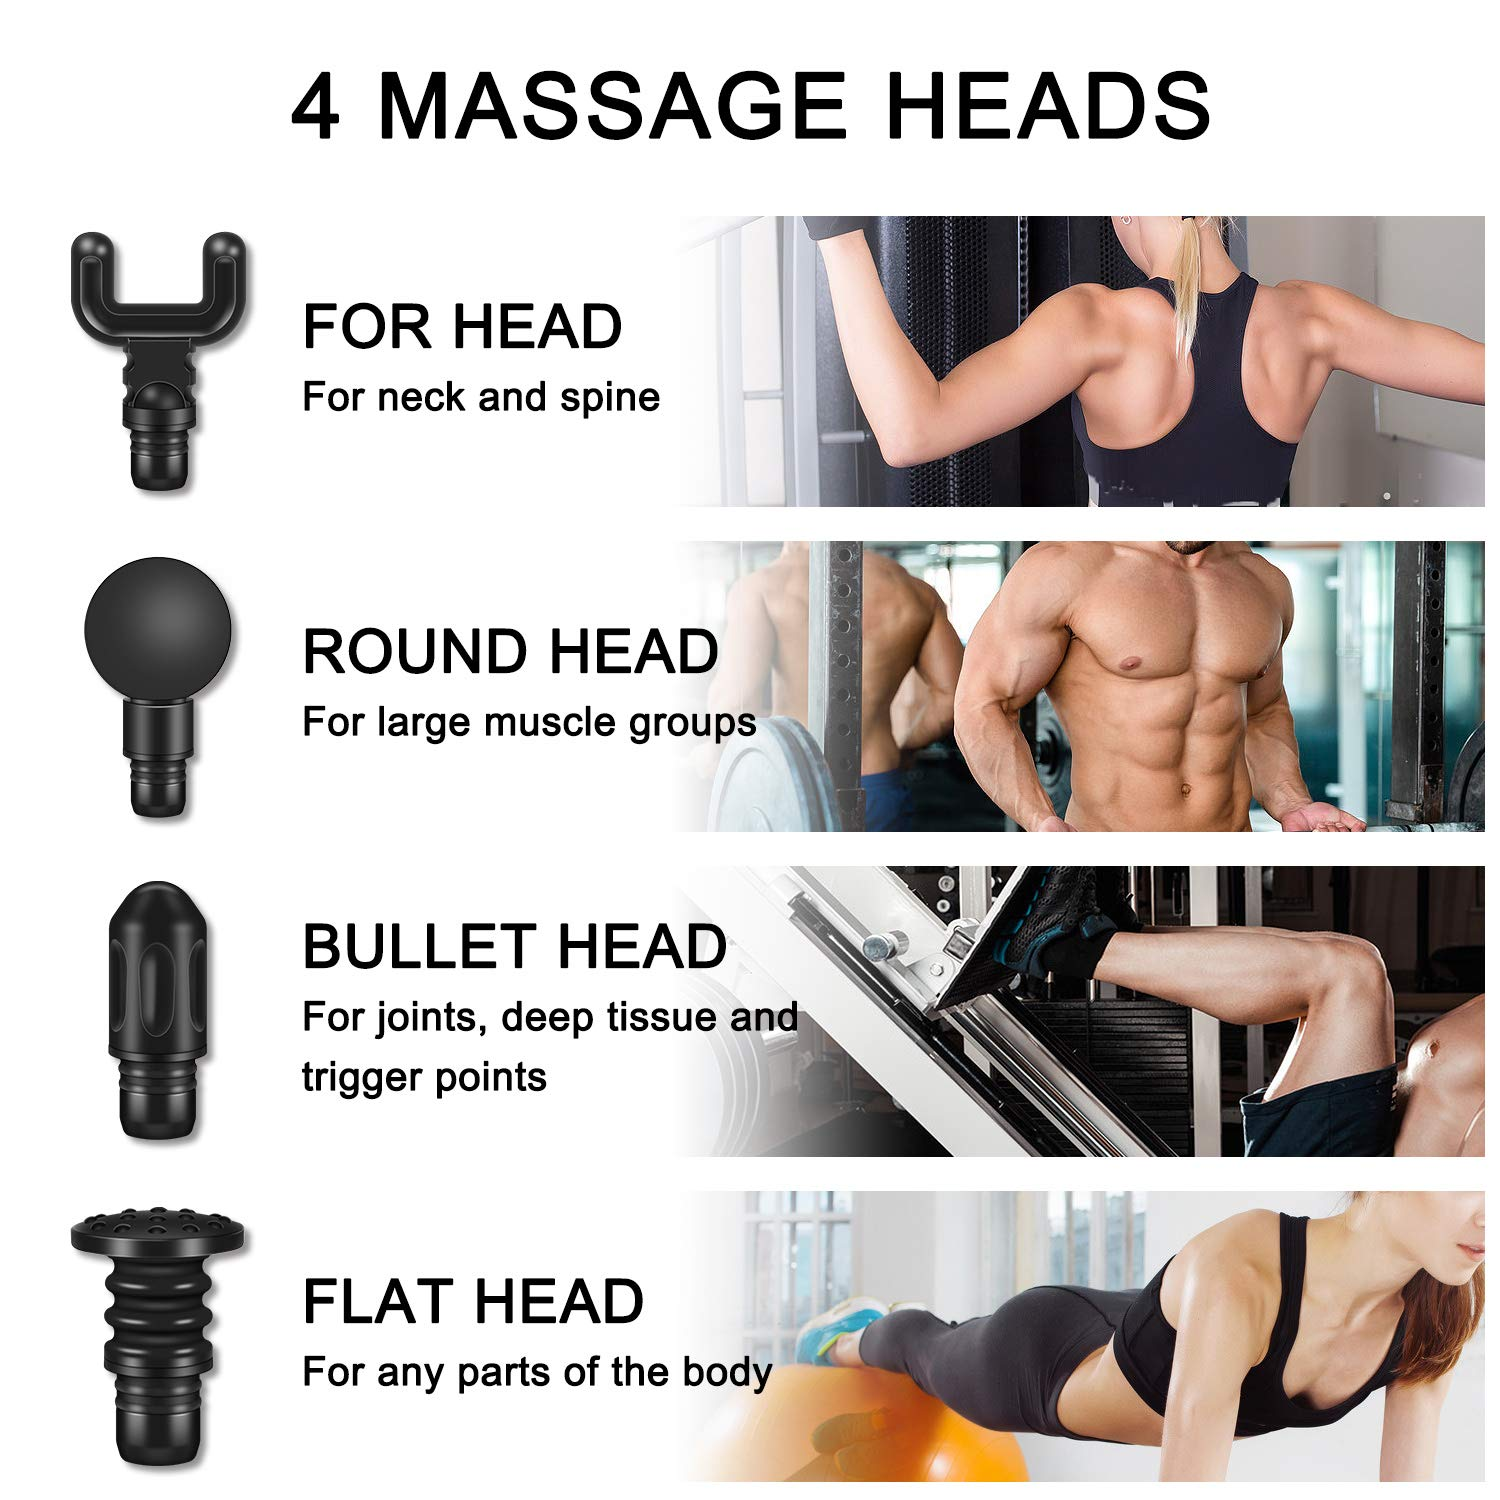 MADETEC Professional Muscle Massage Gun for Athletes and Pain Relief,Handheld Electric Deep Tissue Muscle Massager Percussion Body Back Massager with 20 Adjustable Speed